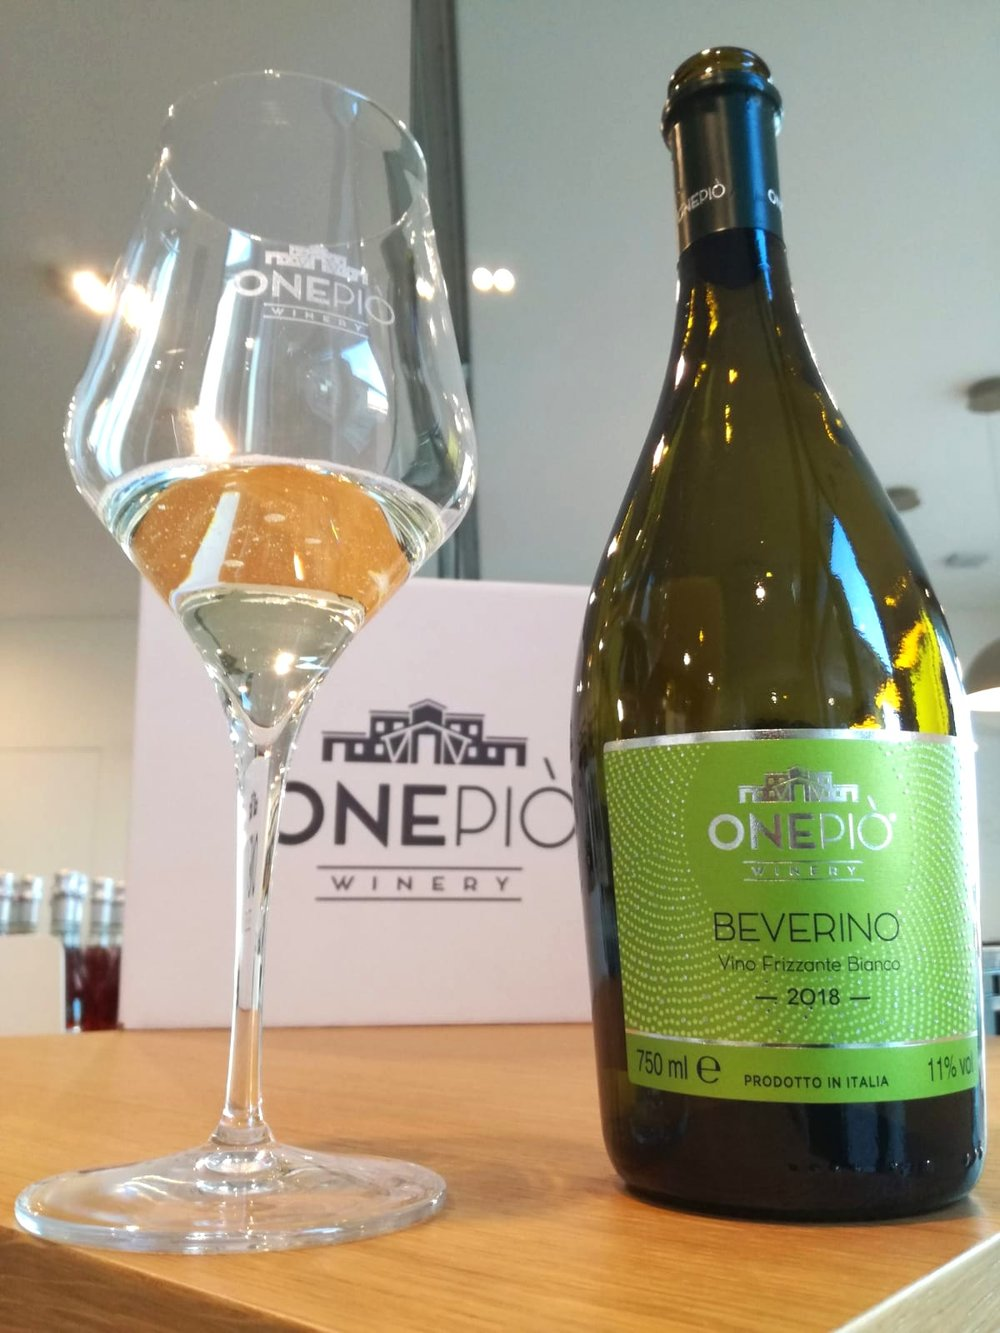 Beverino is Ready! - Slightly Sparkling White Wine, 100% Turbiana Grapes, excellent to express your creativity during aperitif with your friends.